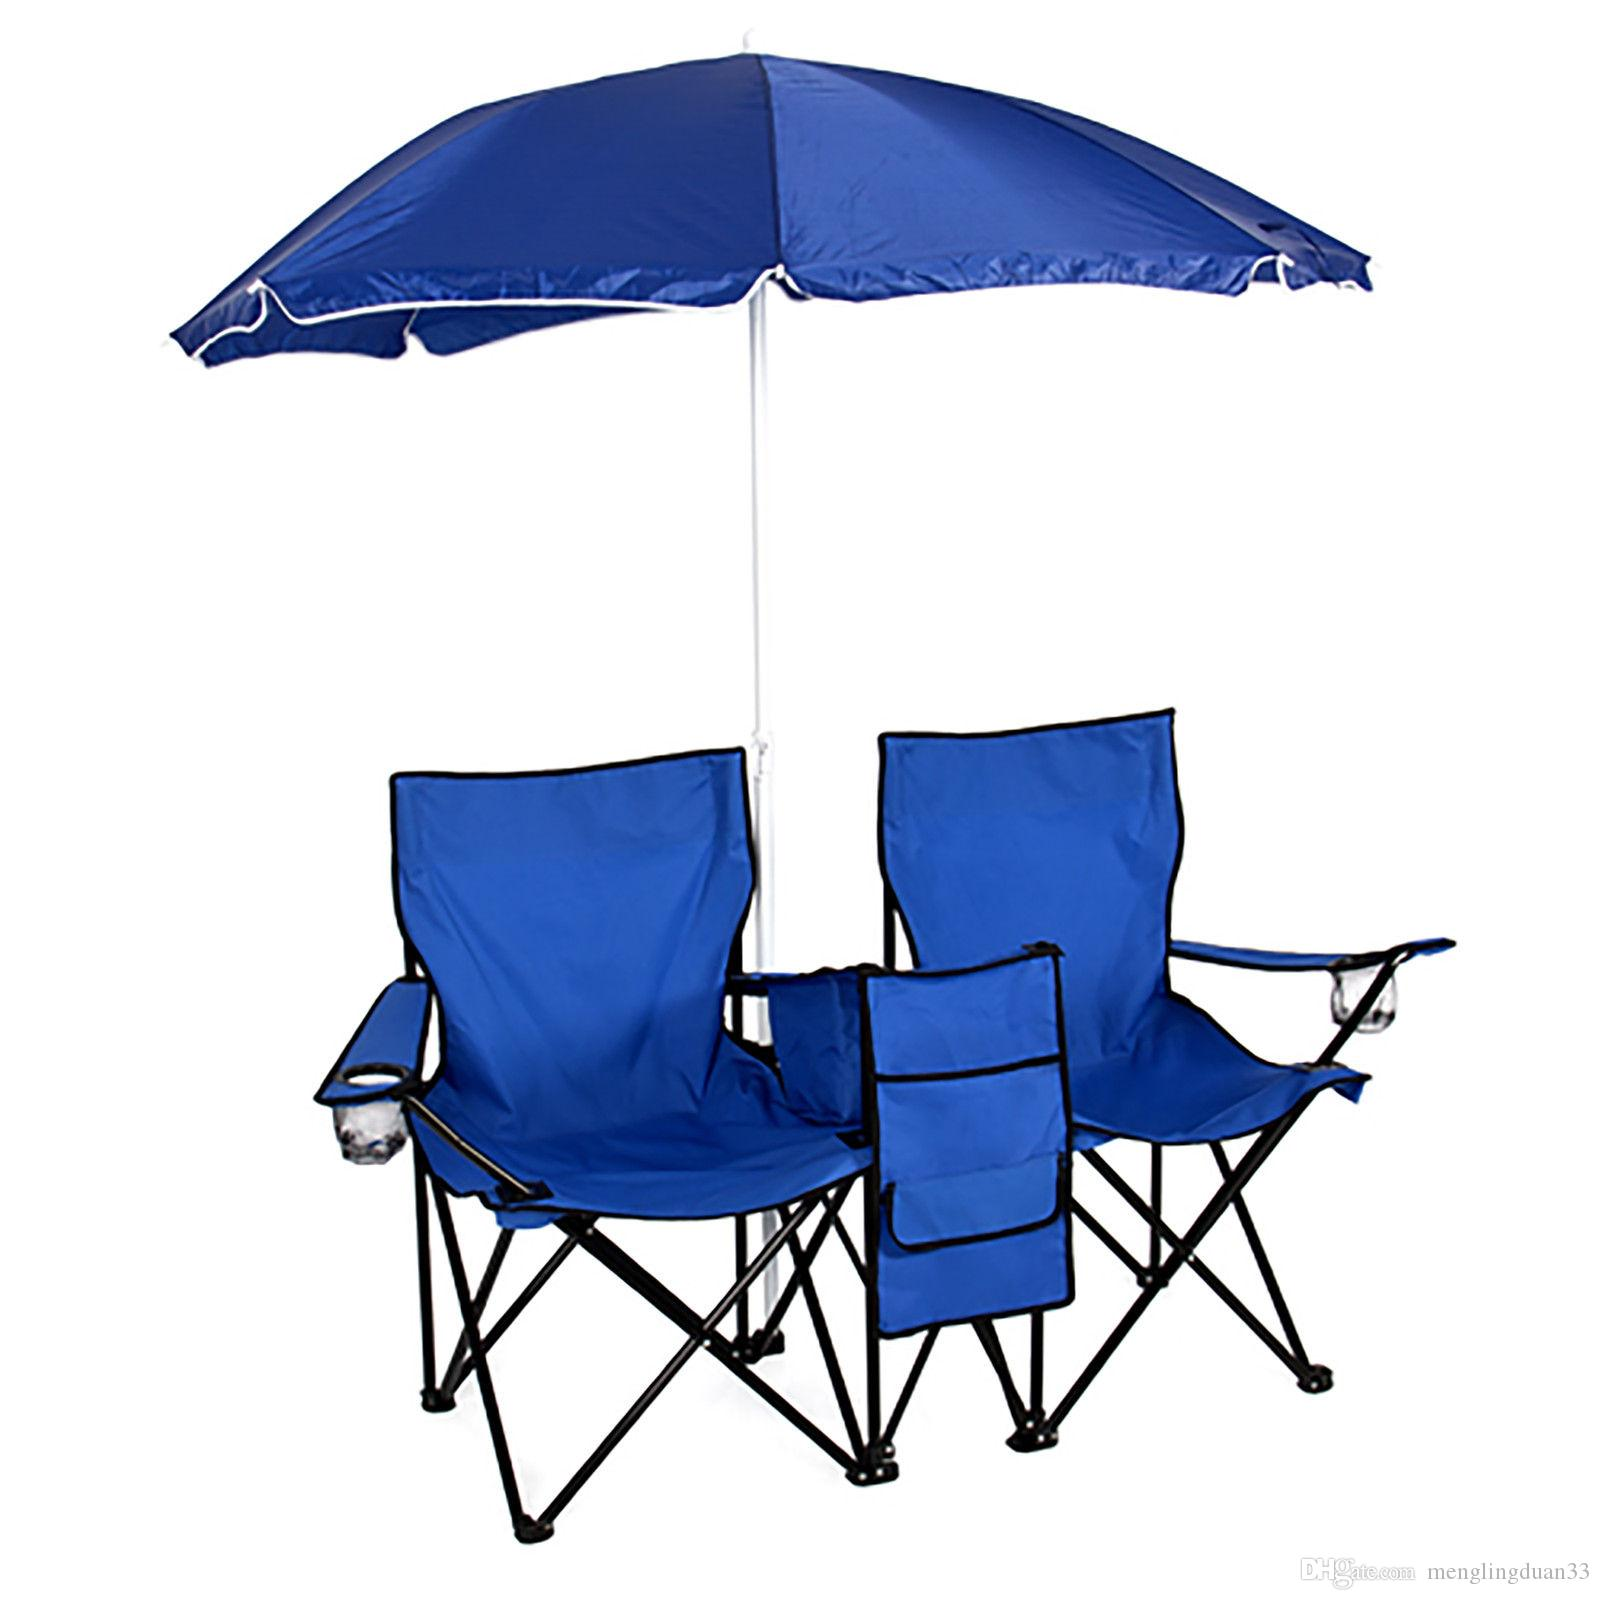 Picnic Double Folding Chair Umbrella Table Cooler Fold Up Beach